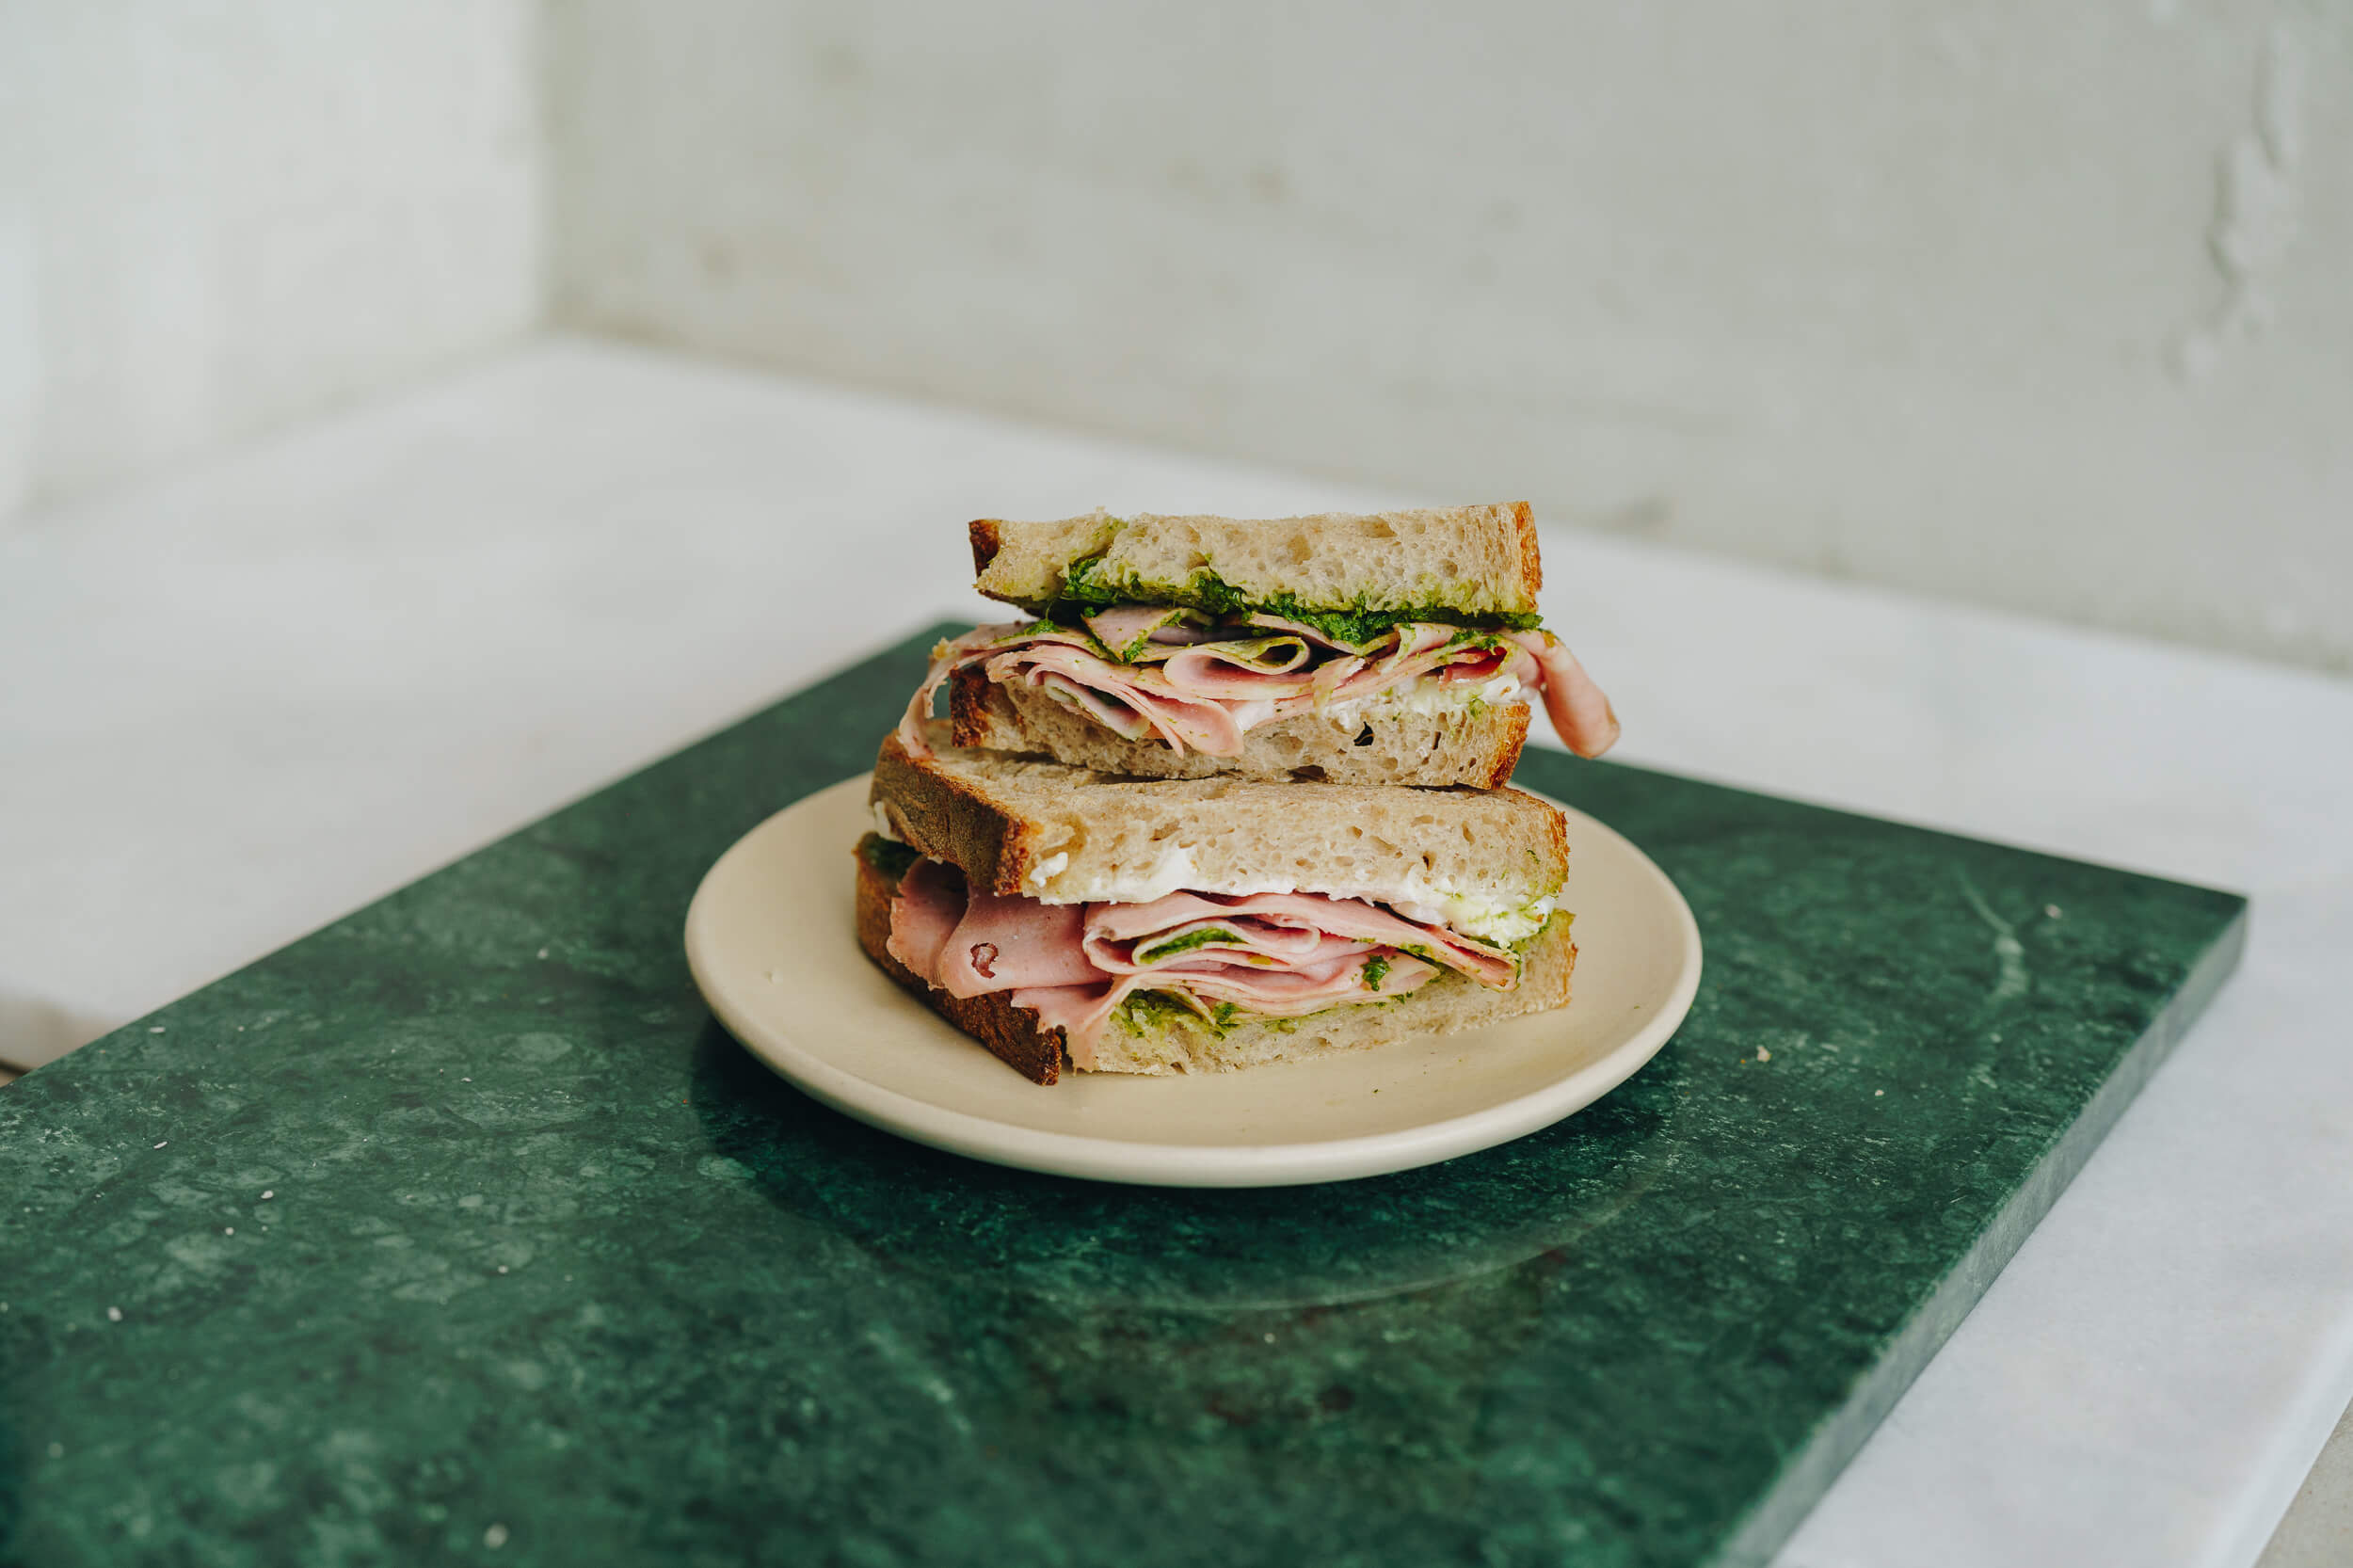 Public Space | Mortadella Sandwich | Food | Amsterdam Cafe | Food Delivery | Restaurant | Take Away | Pickup